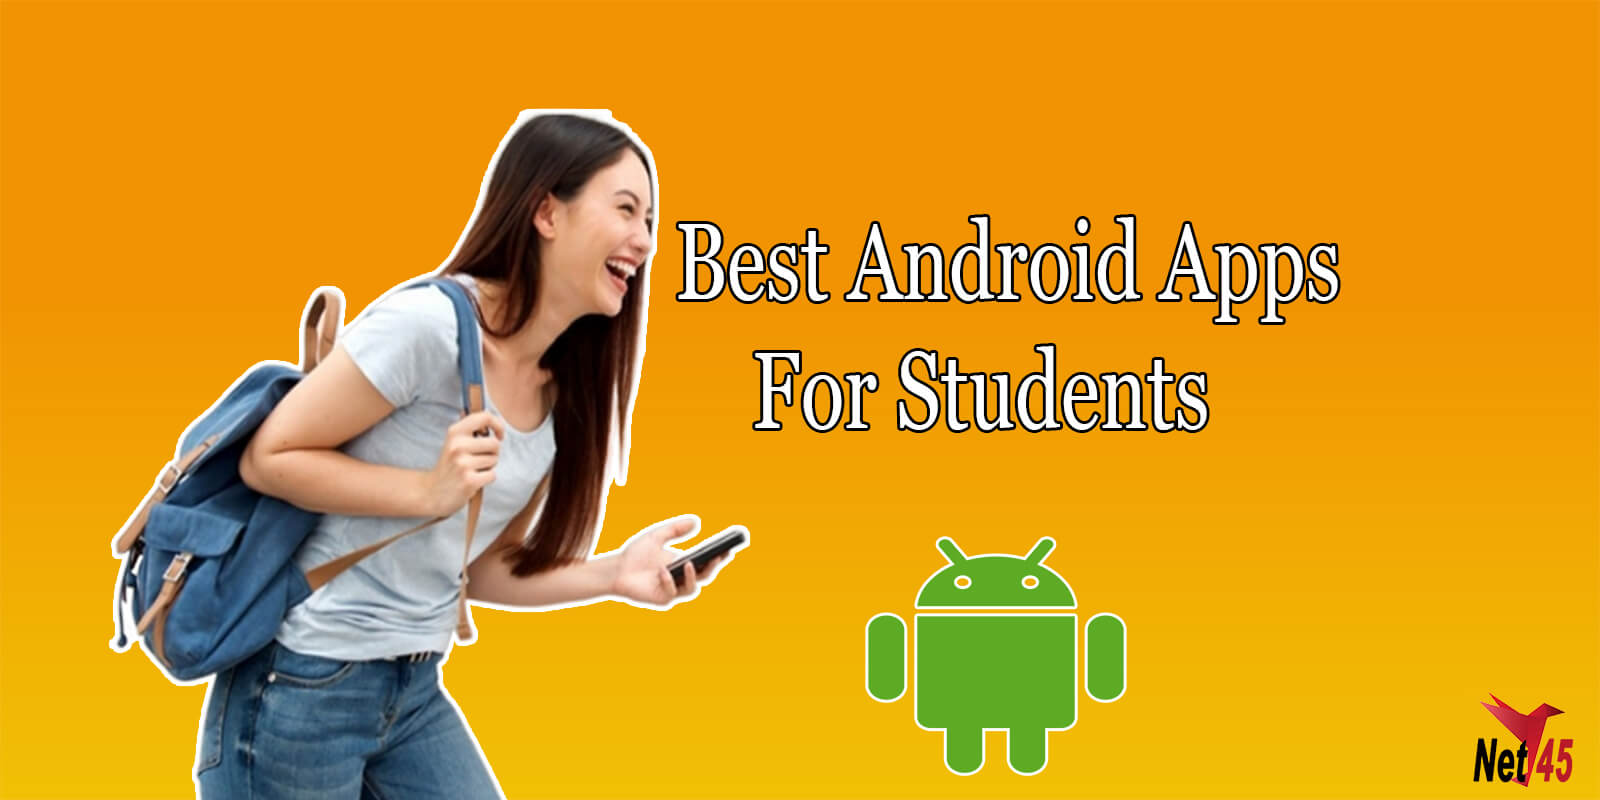 best apps for students,apps for students,android apps,top android apps for students,apps for college students,android,best android apps,top android apps,apps,free apps for students,10 apps for students,top apps for college students,android apps for student,apps for android,student apps,best android apps for studying,apps for students 2019